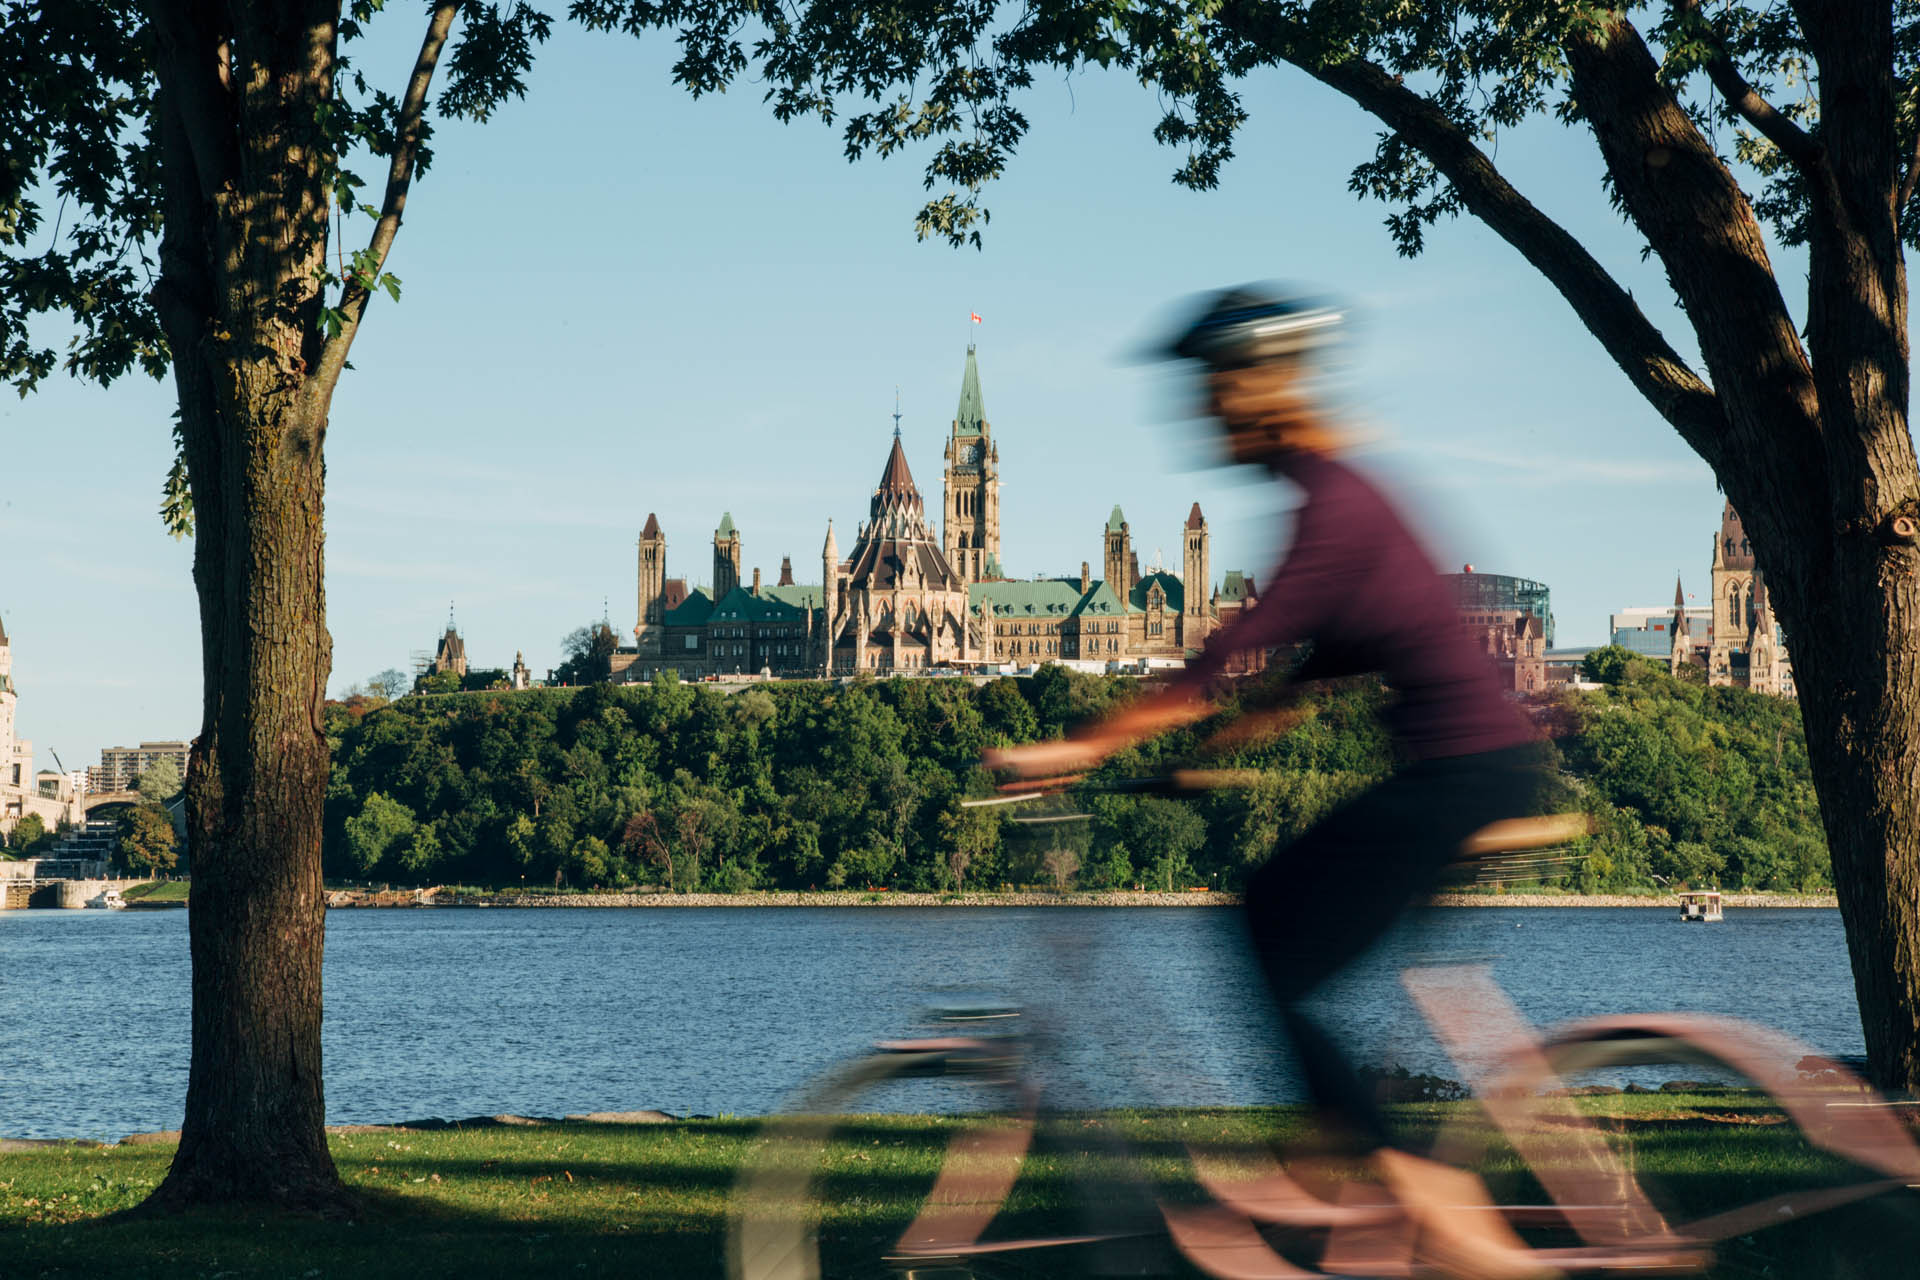 Blurred woman cycling across the Ottawa River with the Parliamant Hill in the background